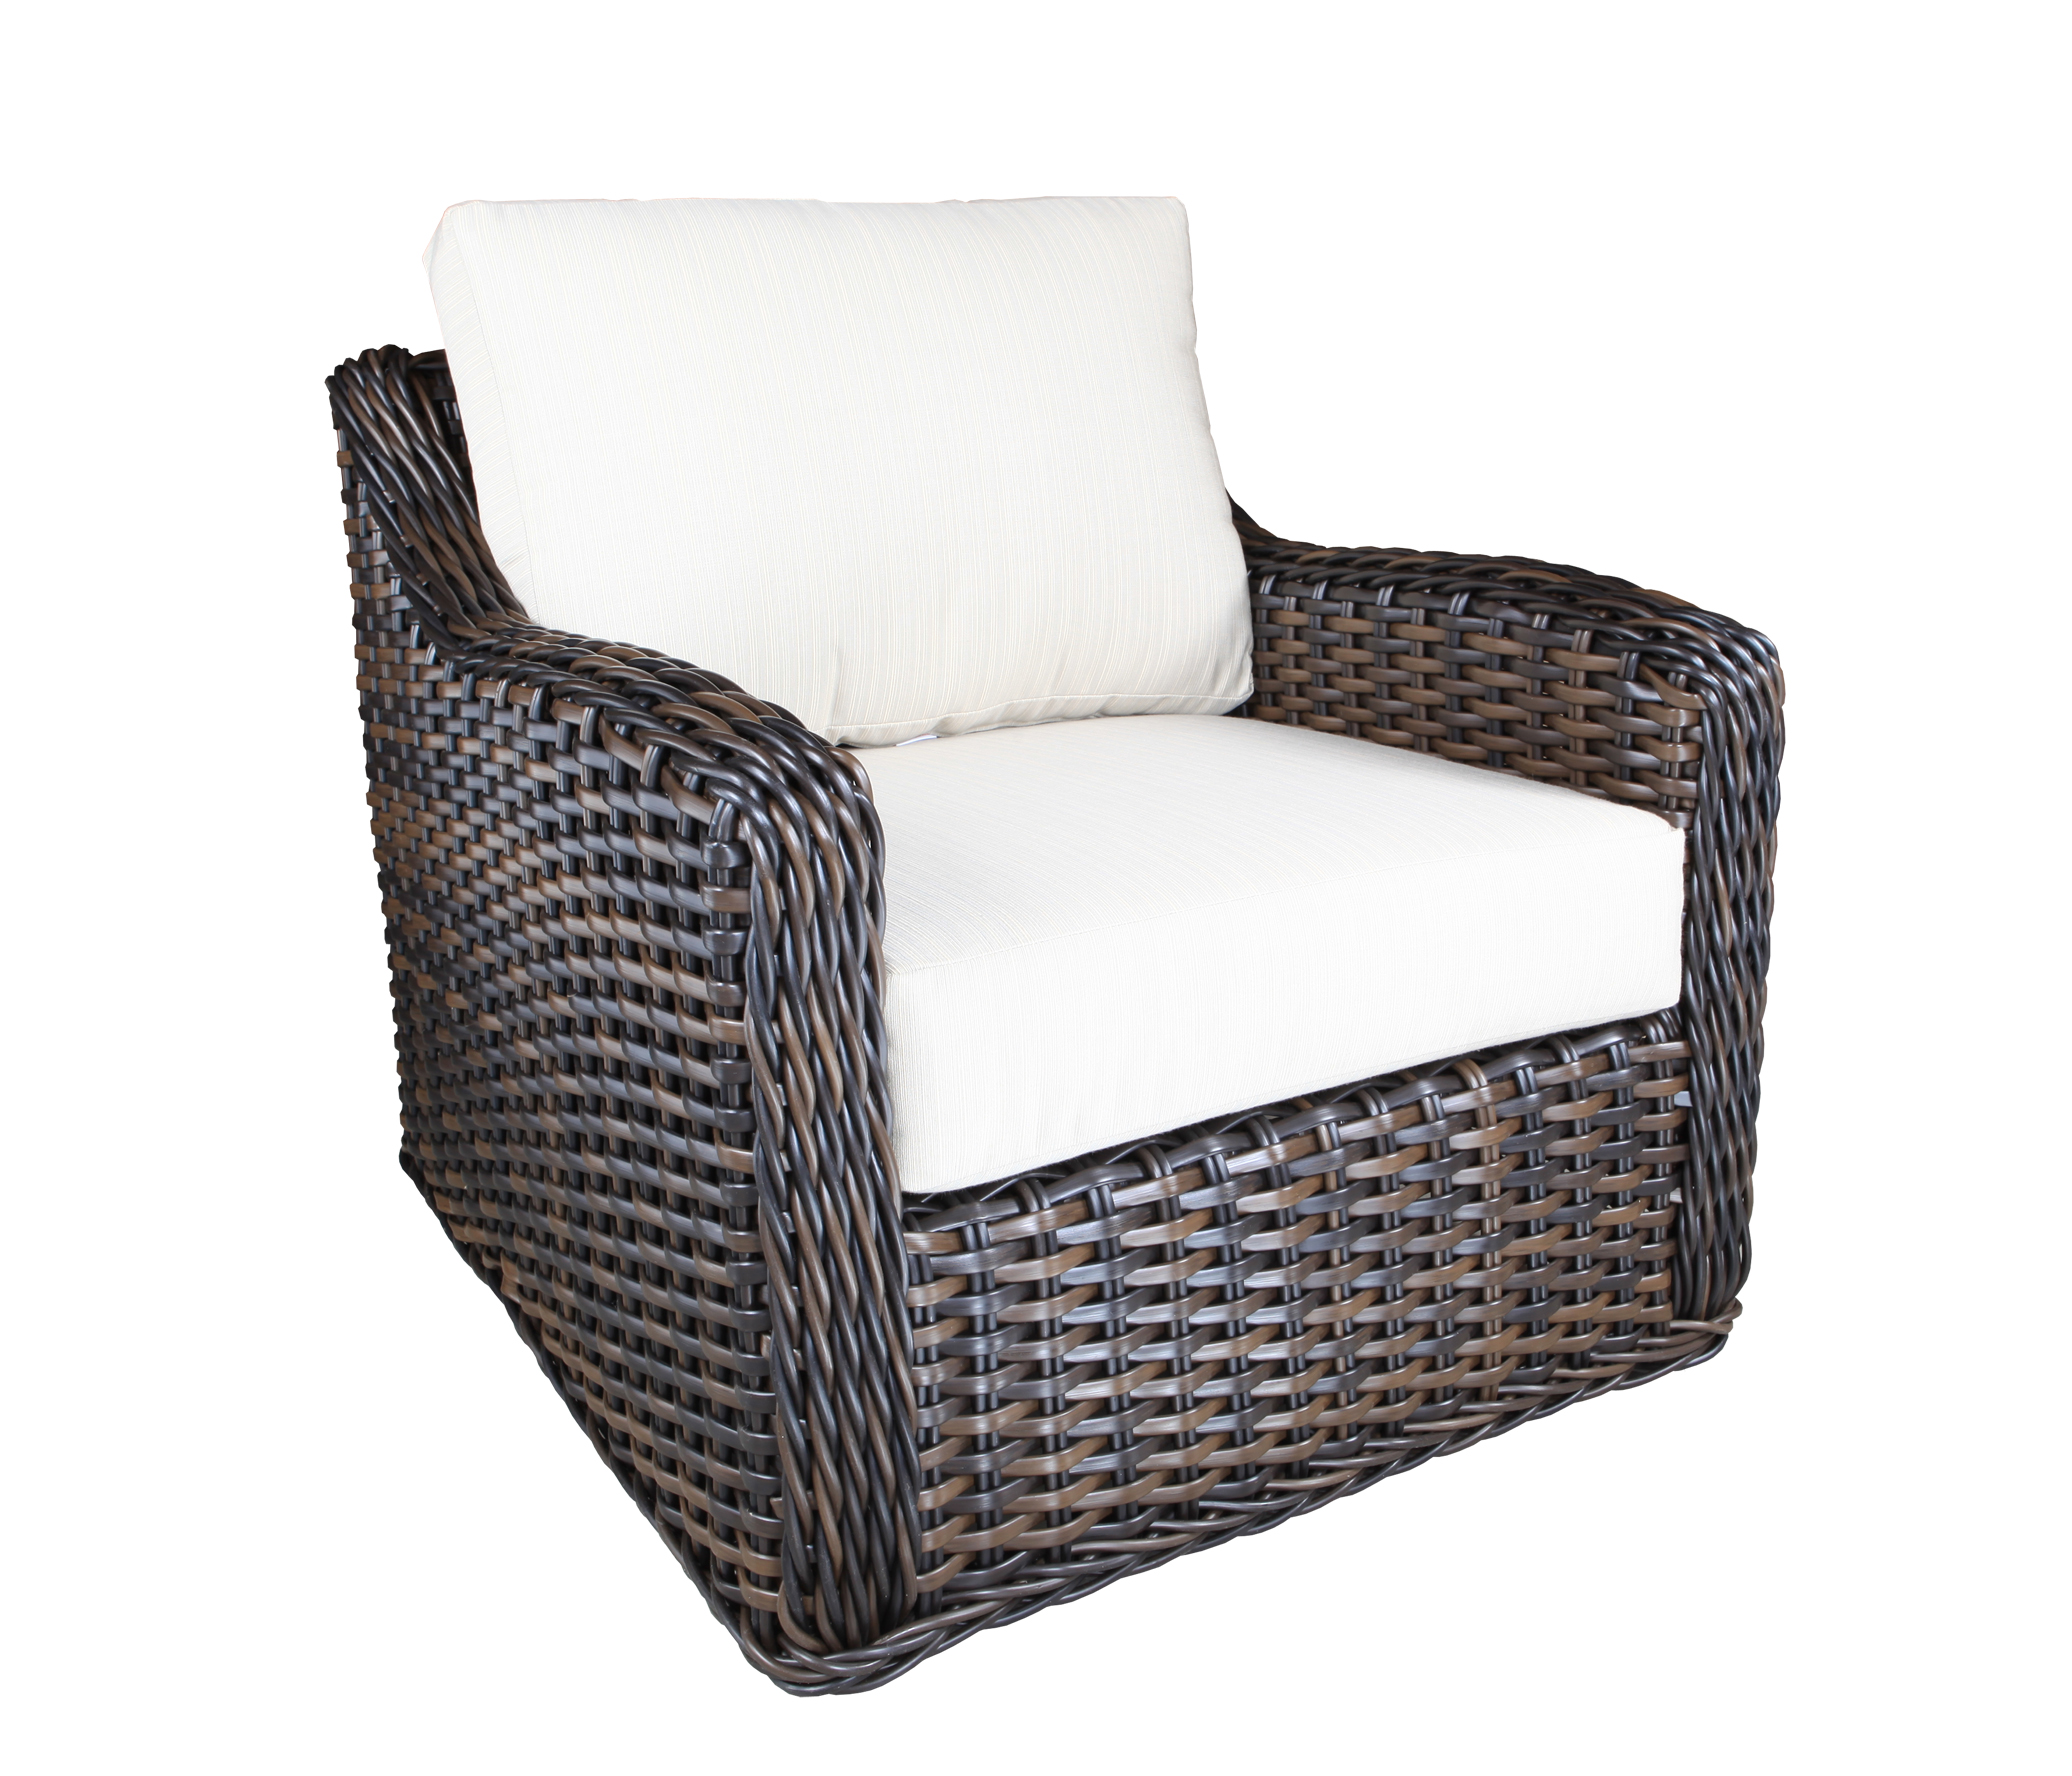 Outdoor Patio Furniture Toronto: Nevada Wicker Deep Seating Chair